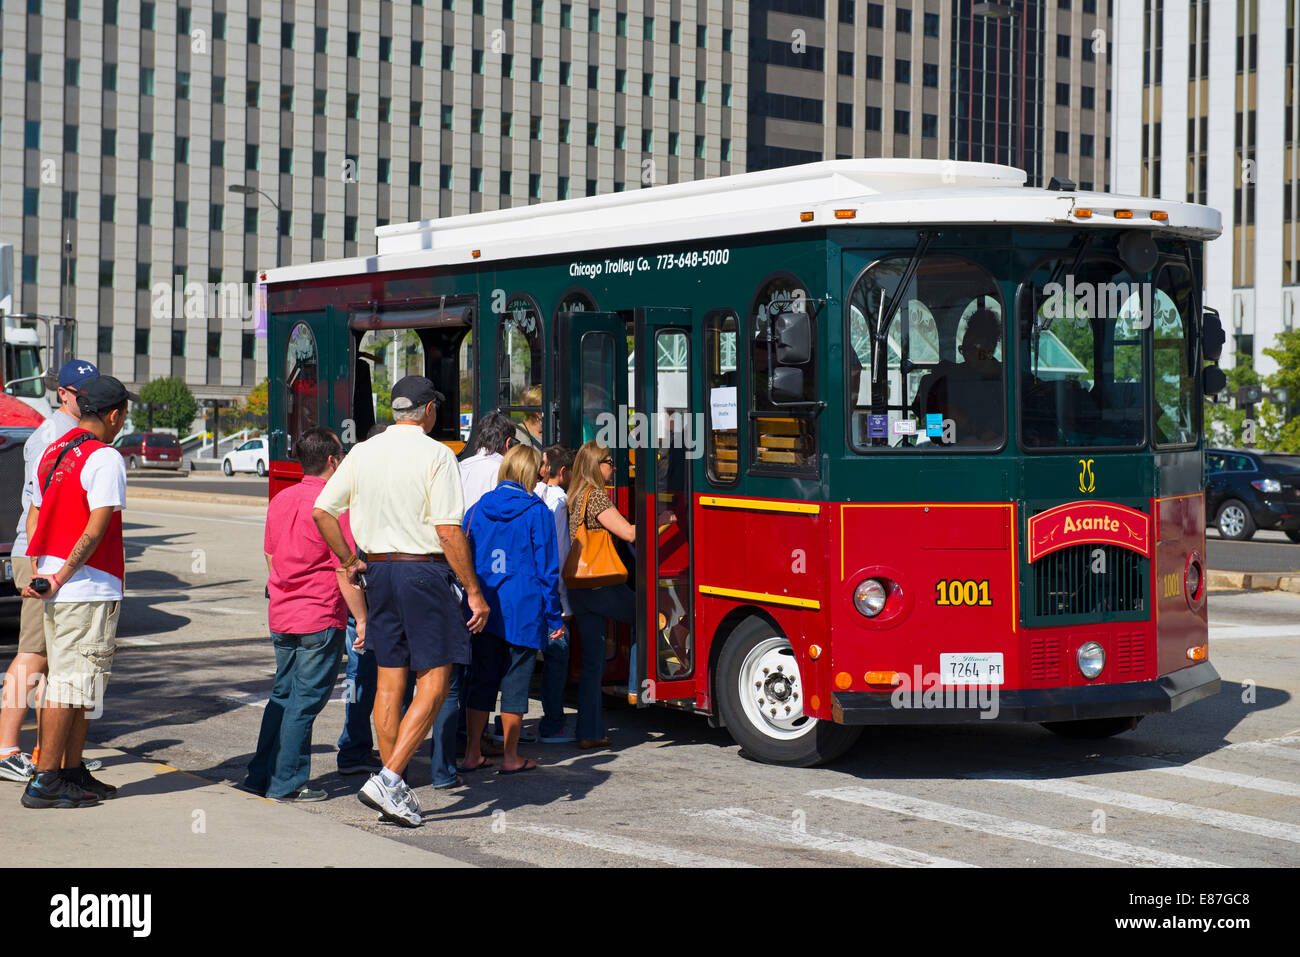 Chicago Trolley, Millennium Park Shuttle Service - Stock Image